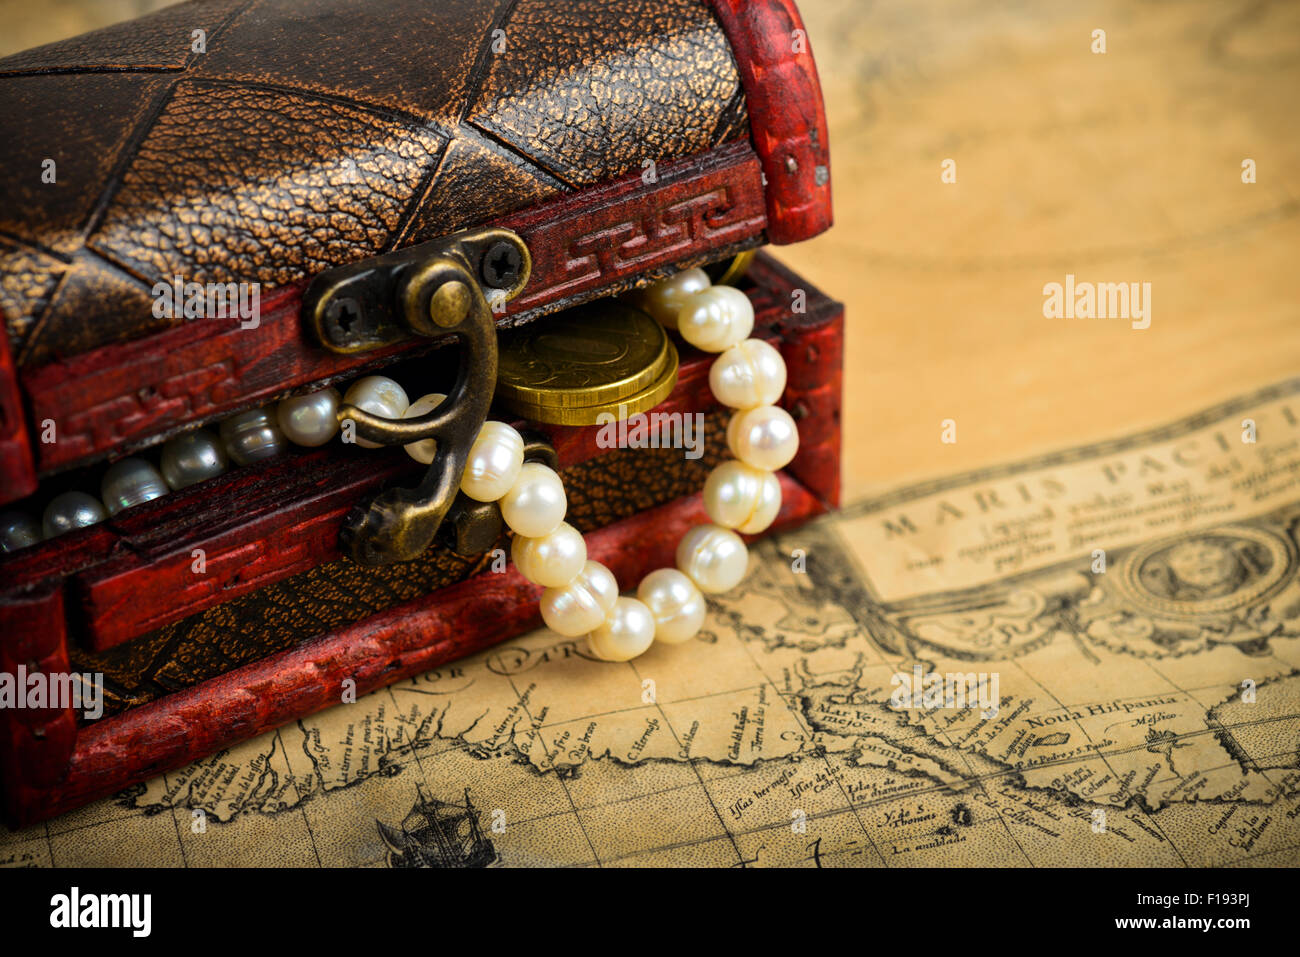 Treasure chest with coins on old adventure maps - Stock Image